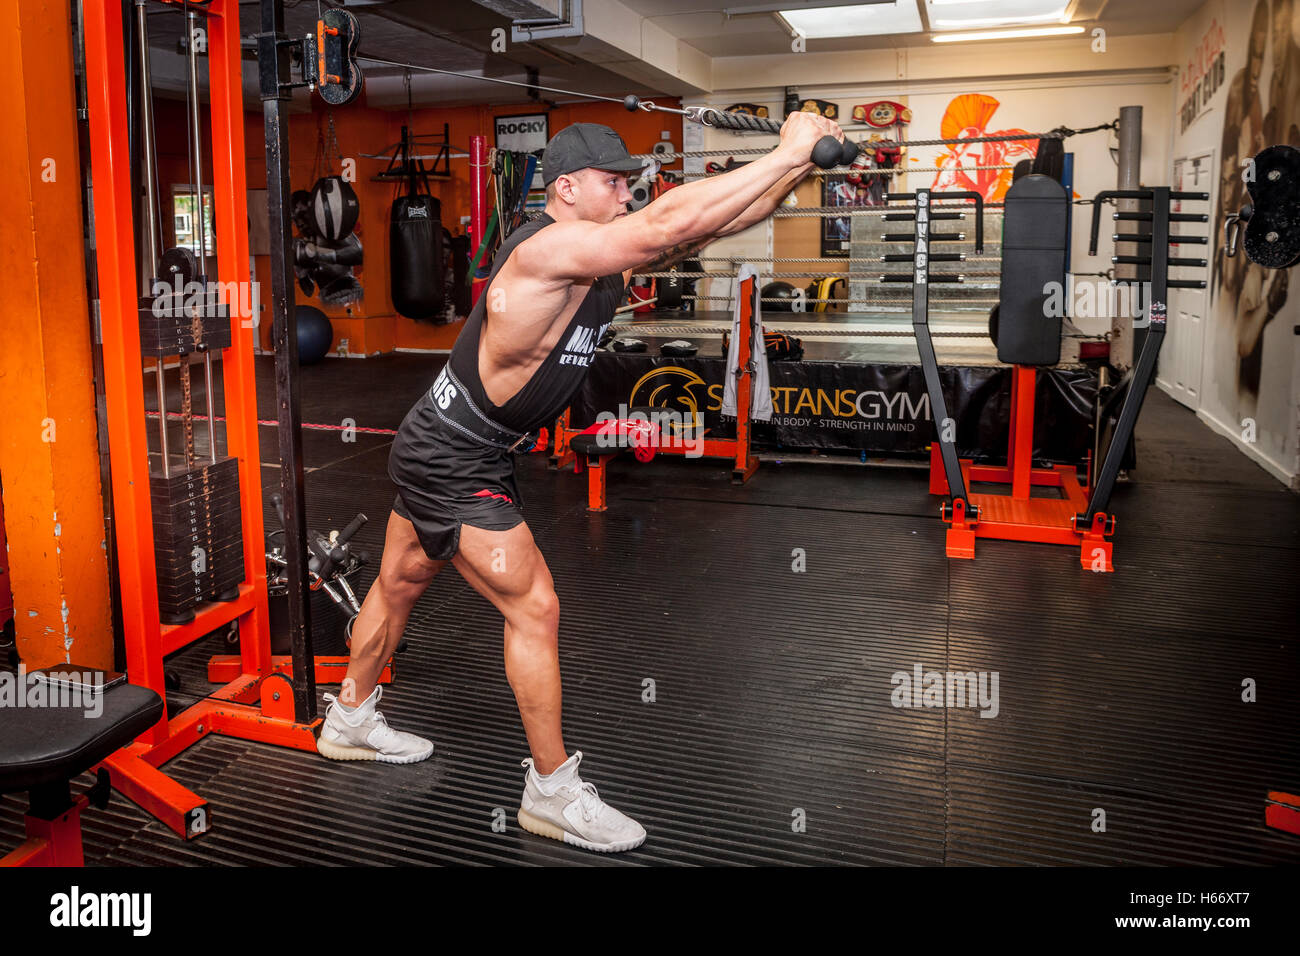 bodybuilder exercising in the gym - Stock Image